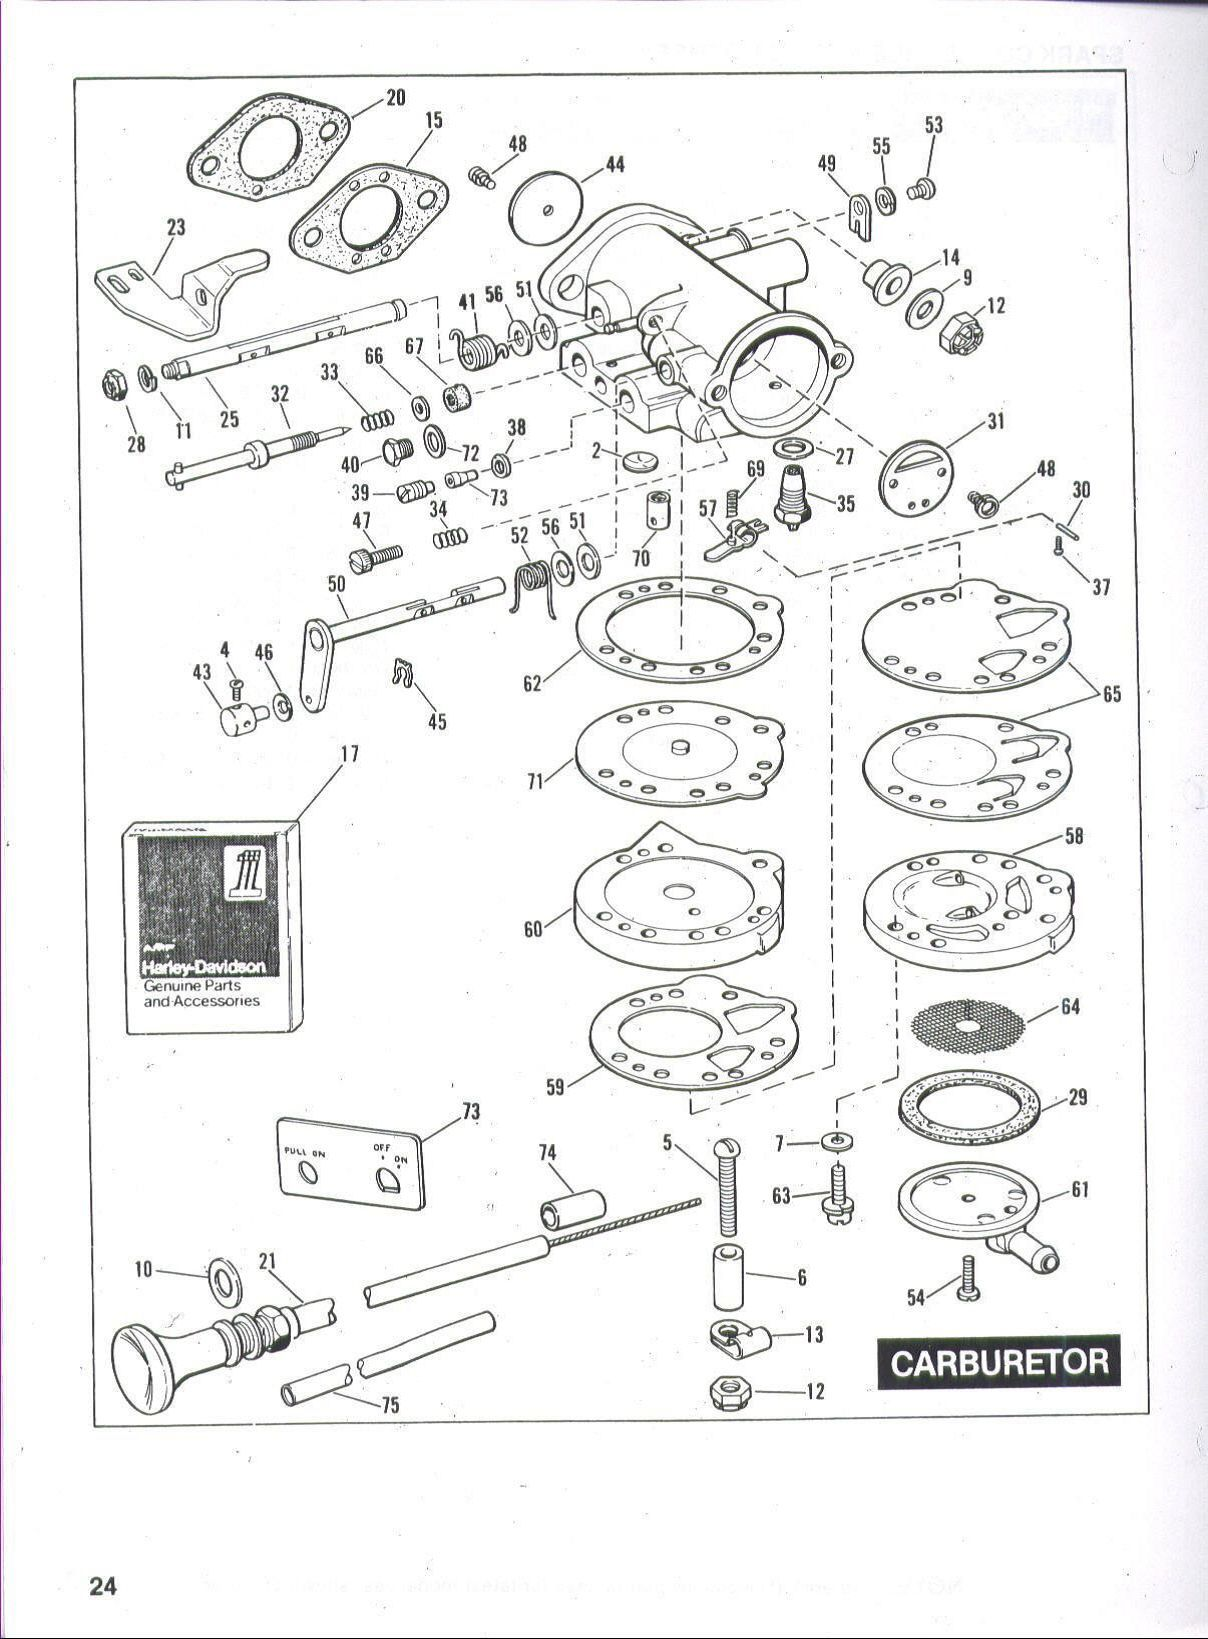 5176dbb44702a1adc4080edf7301936d harley davidson golf cart carburetor diagram utv stuff westinghouse golf cart wiring diagram at soozxer.org